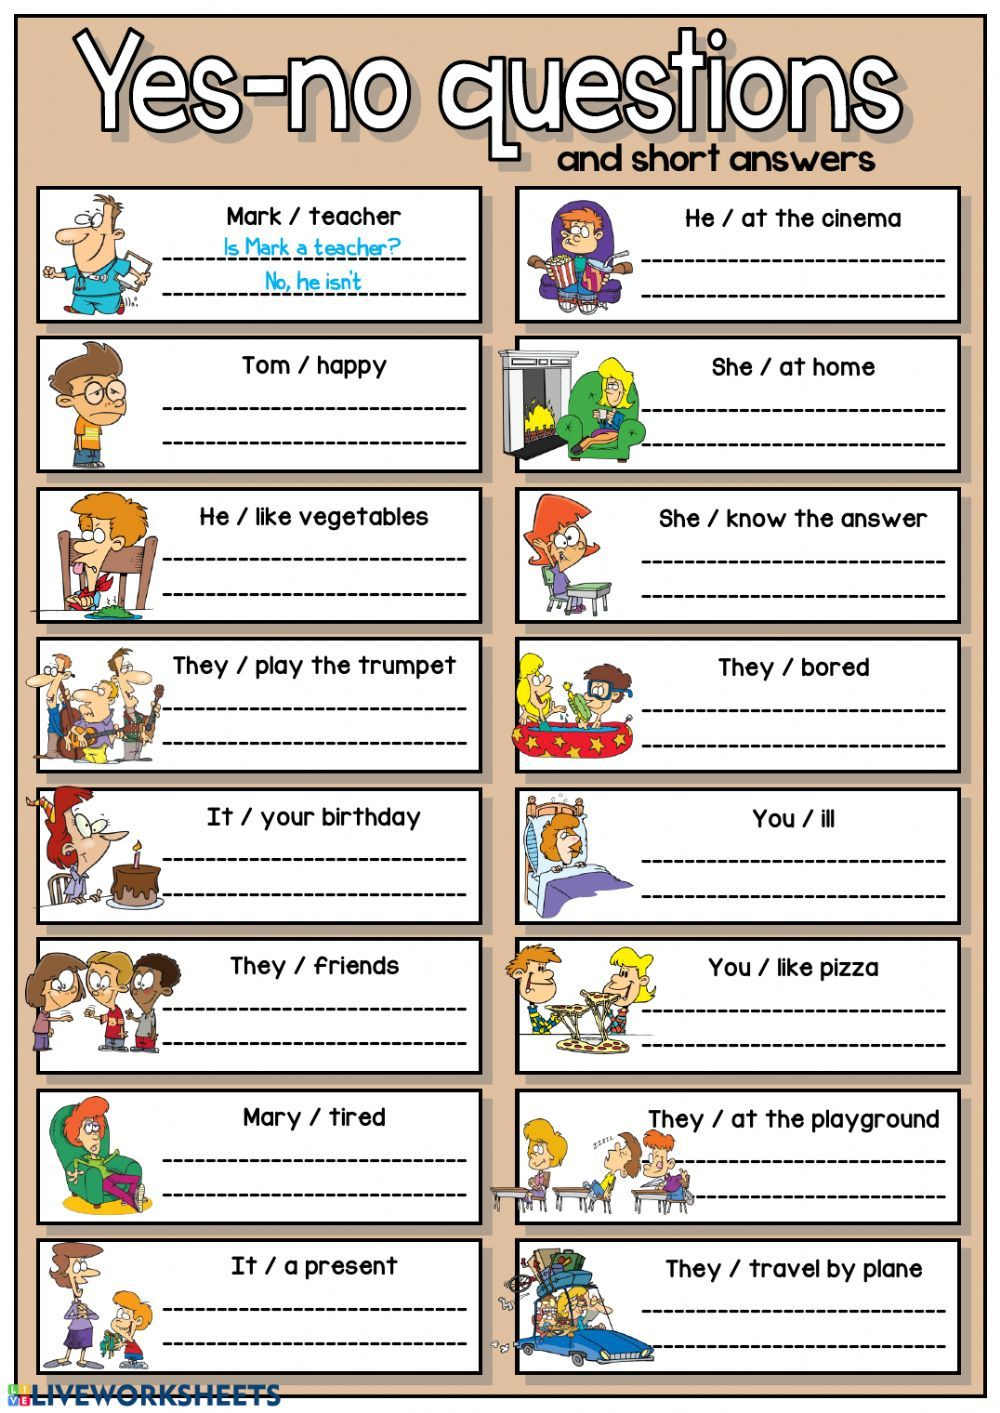 small resolution of https://cute766.info/present-simple-reading-yes-no-and-wh-questions-worksheet-free-esl-printable-worksheets-made/